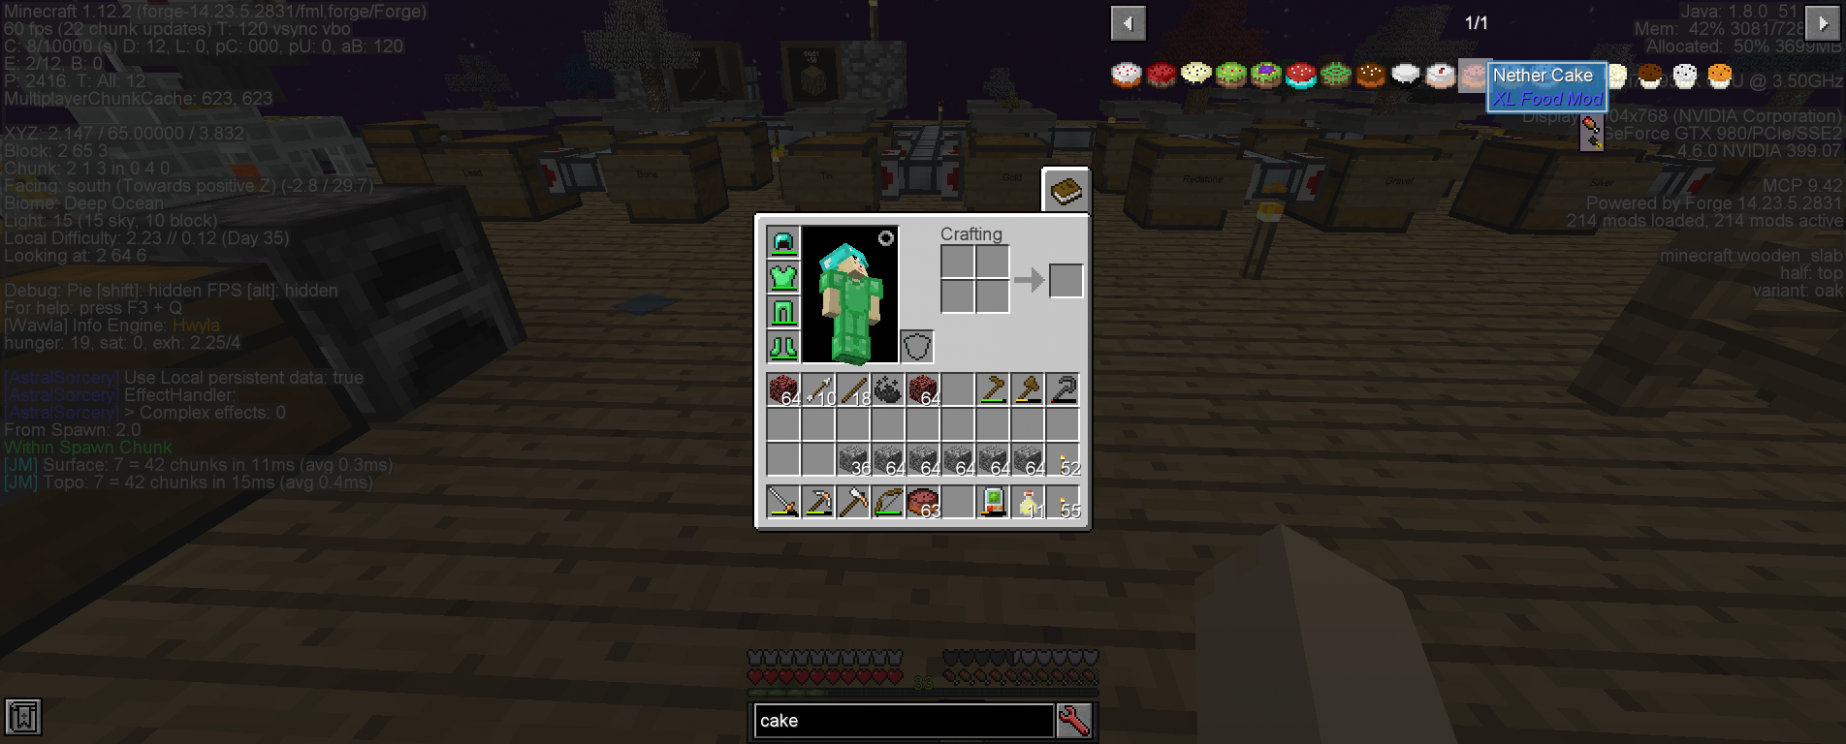 XL Food Nether Cake recipe should be removed to not confuse ..